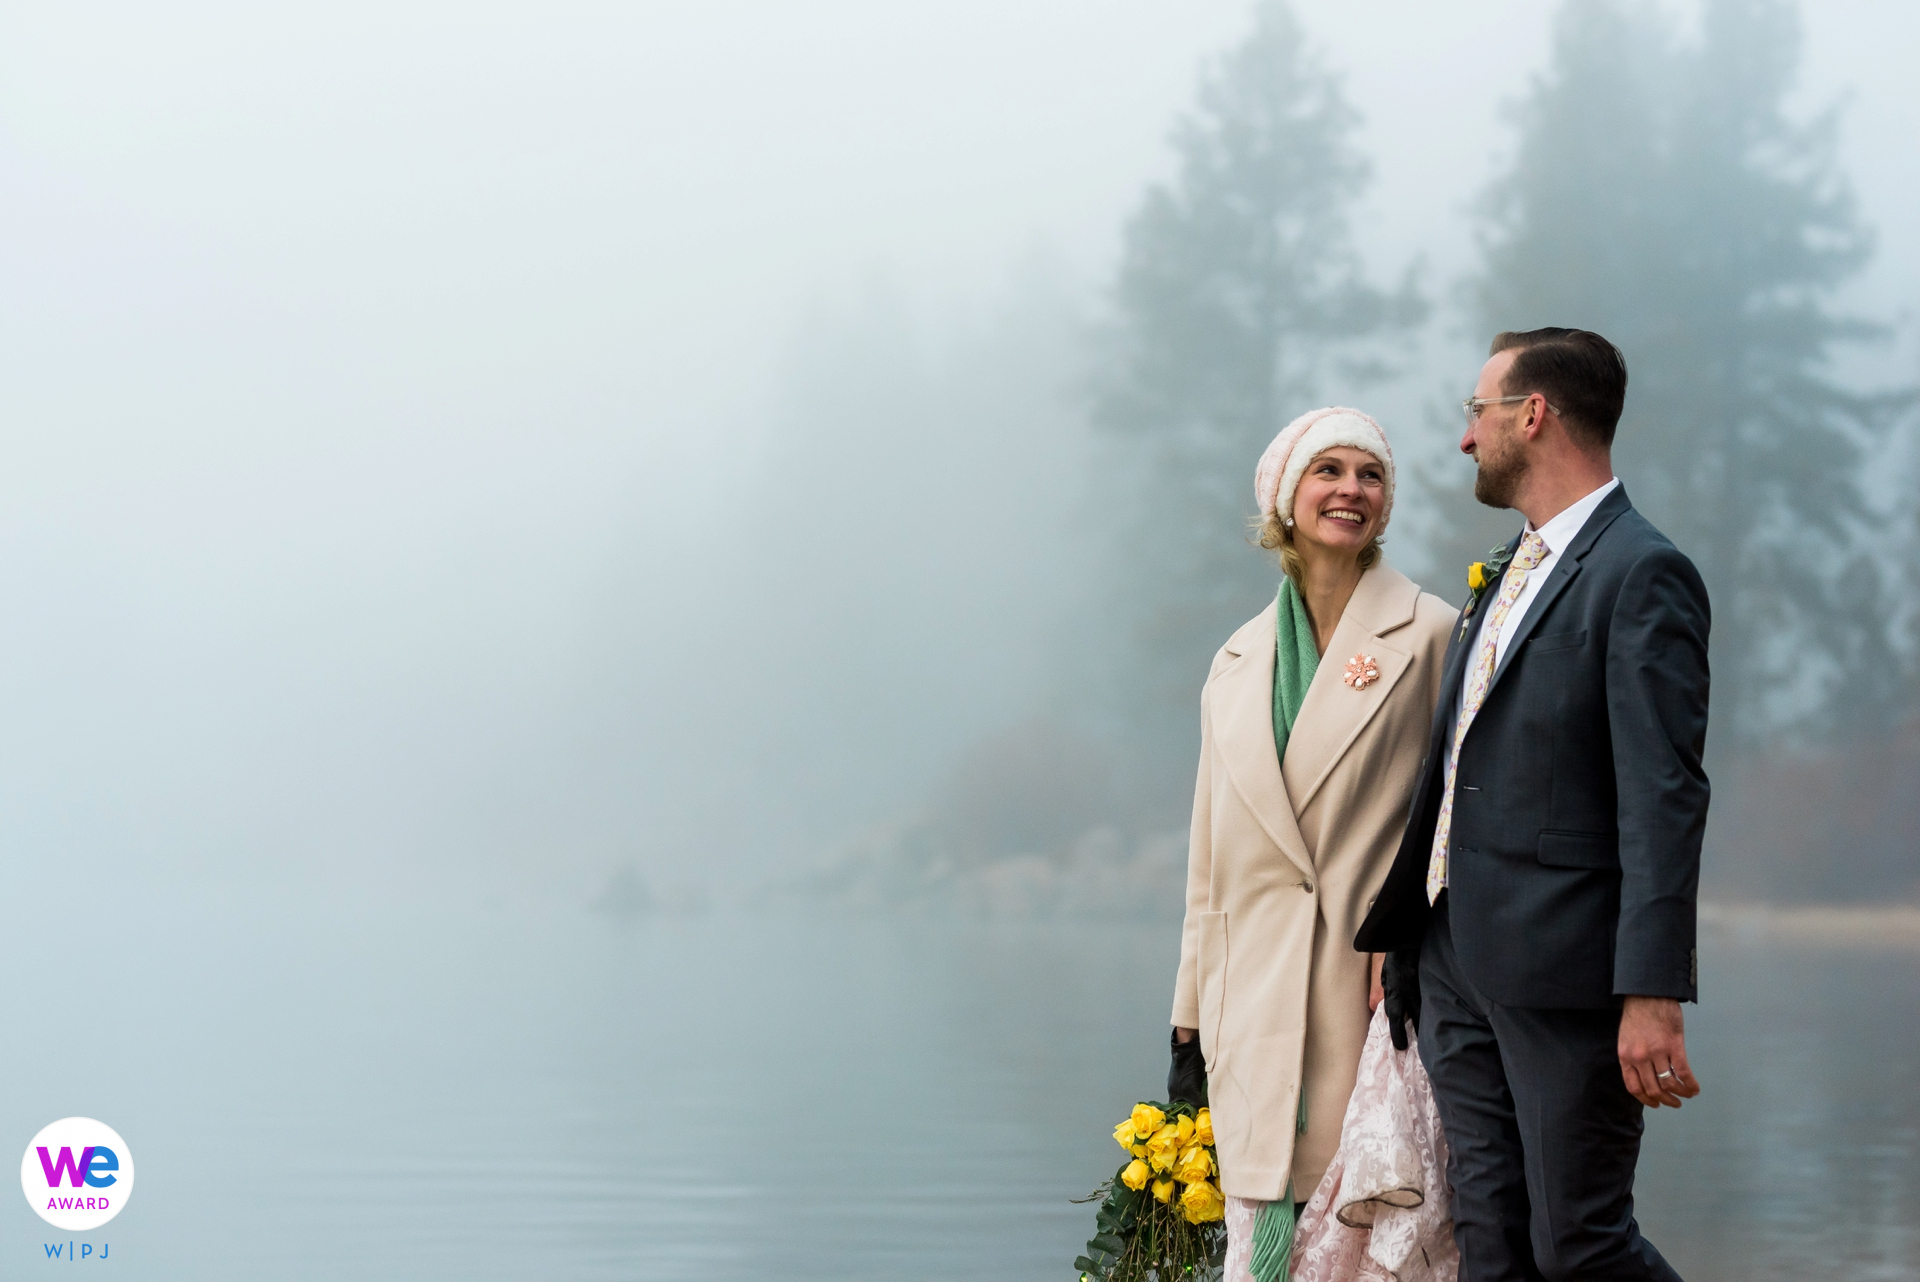 Zephyr Cove Resort Lake Tahoe Nv Elopement Wedding Portraits On The Beach Wedding Photojournalist Association